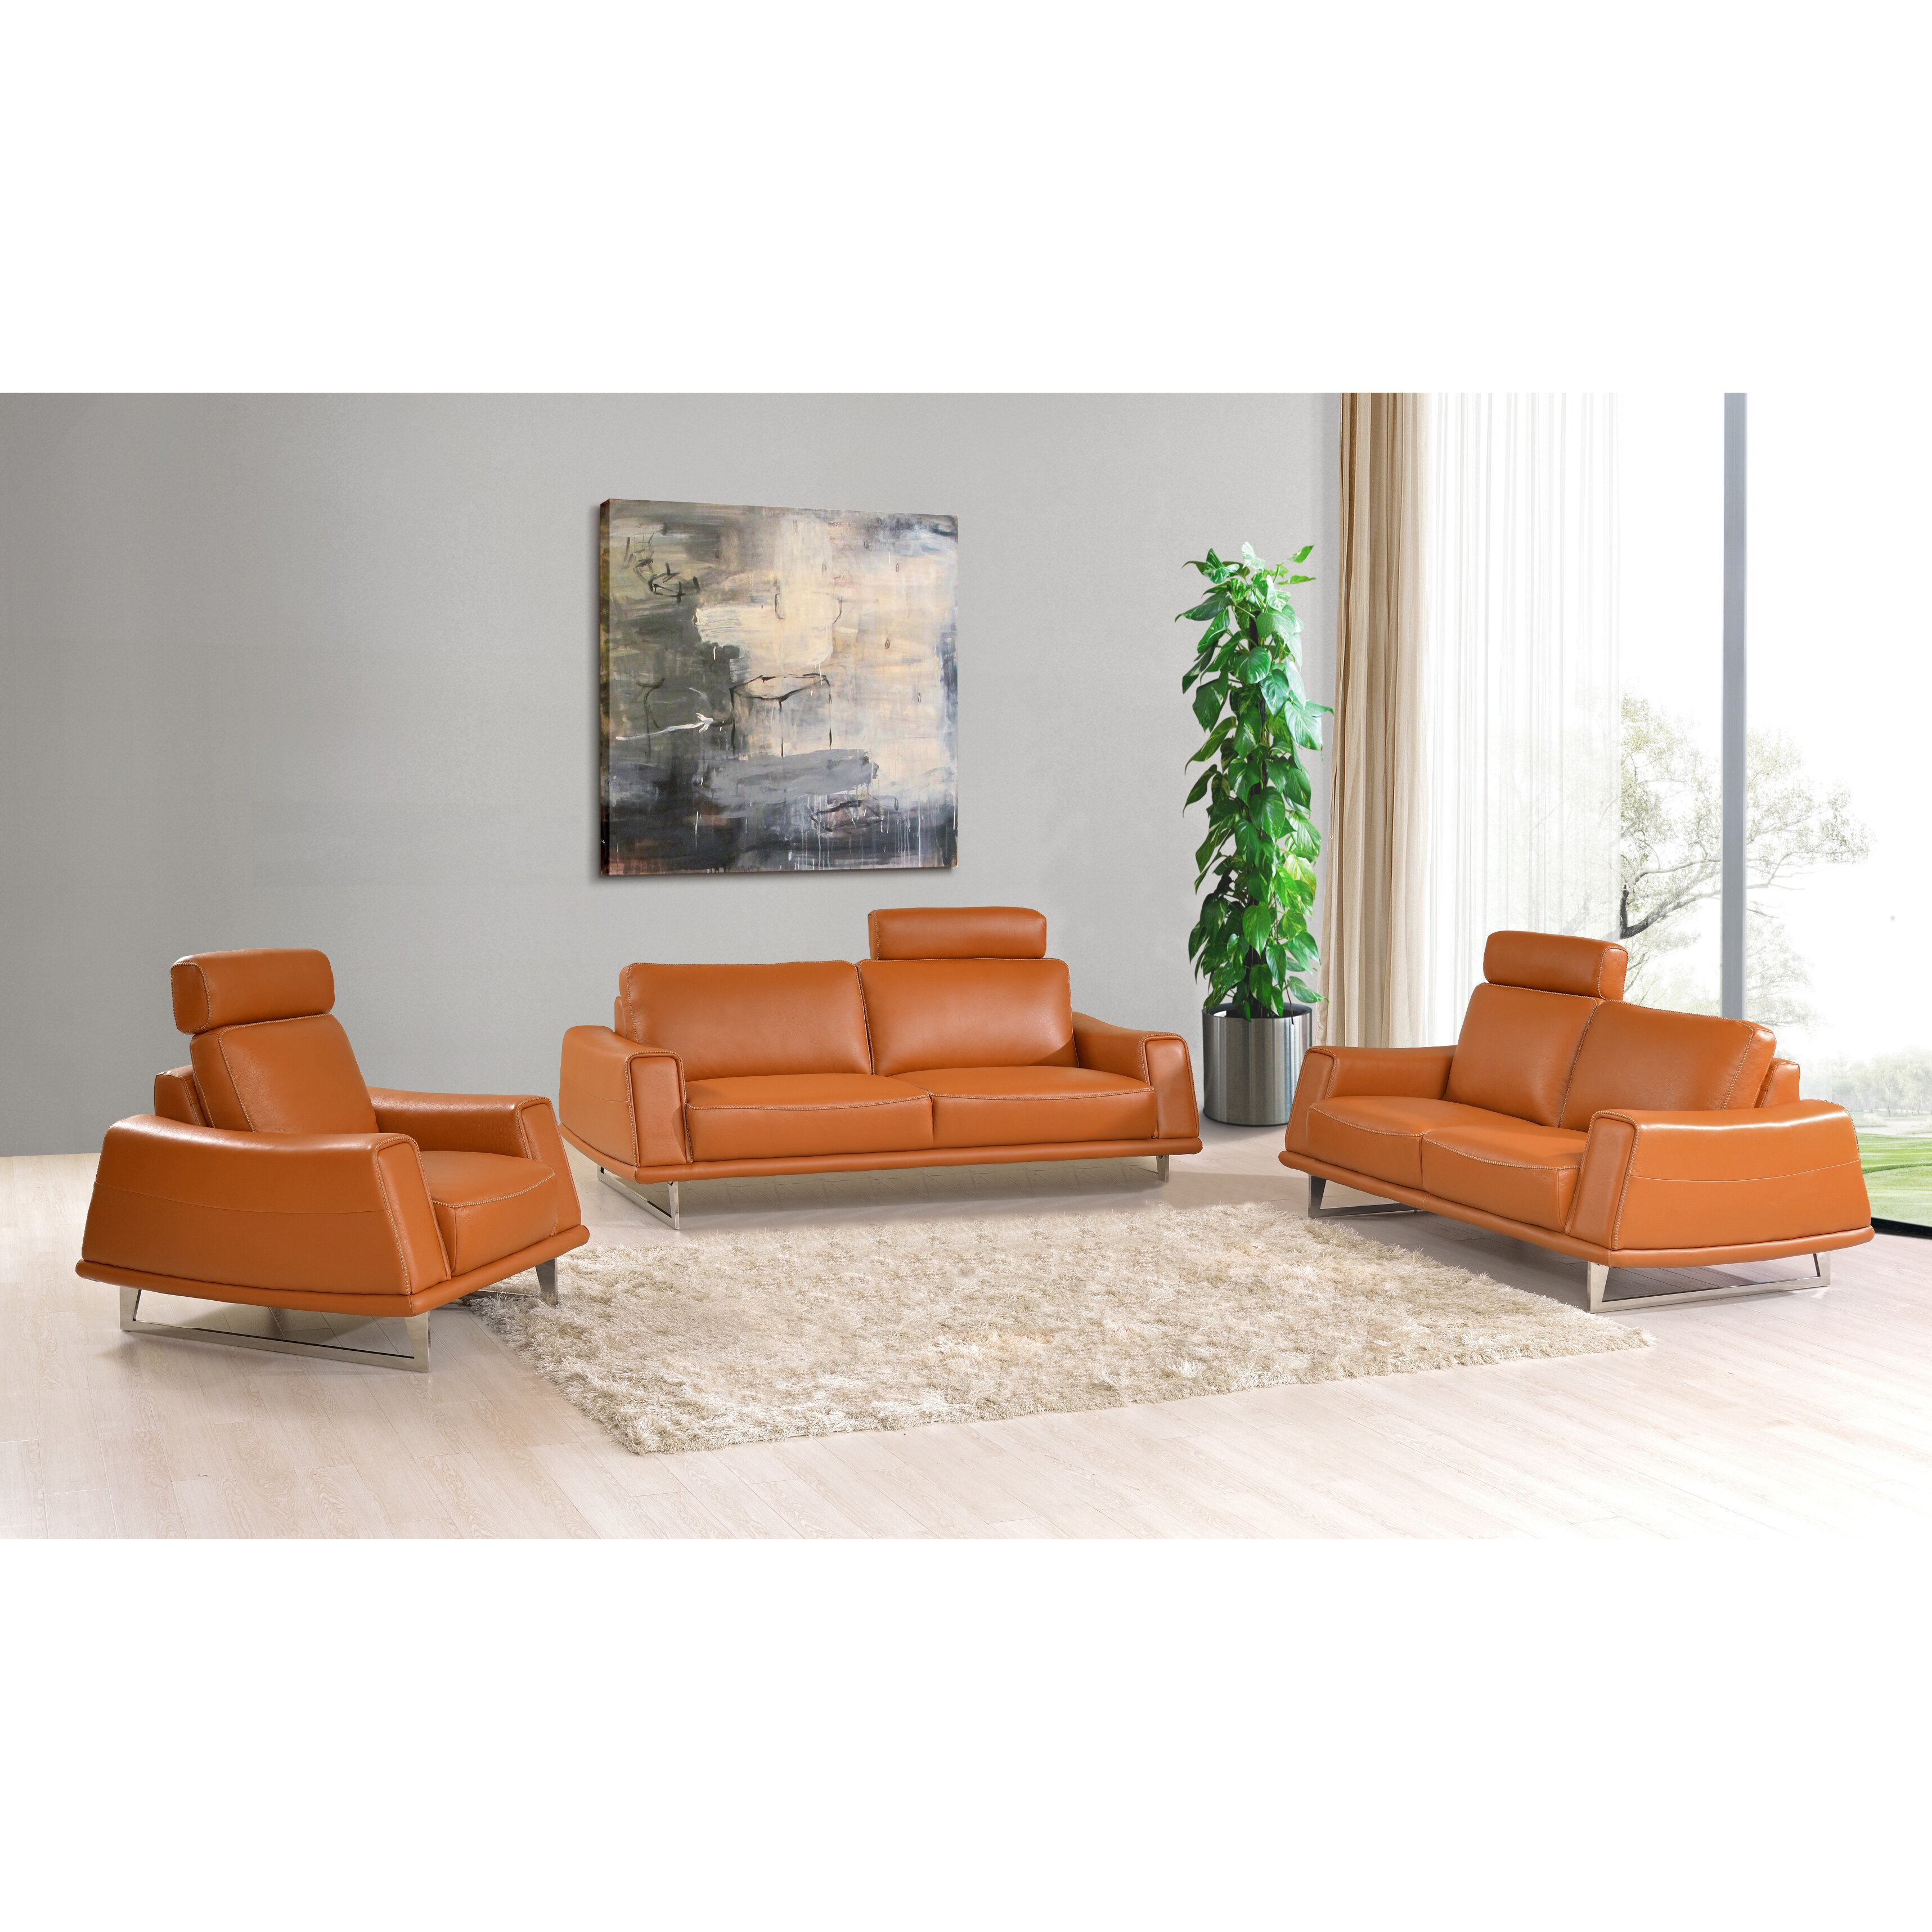 NociDesign Leather 3 Piece Living Room Set